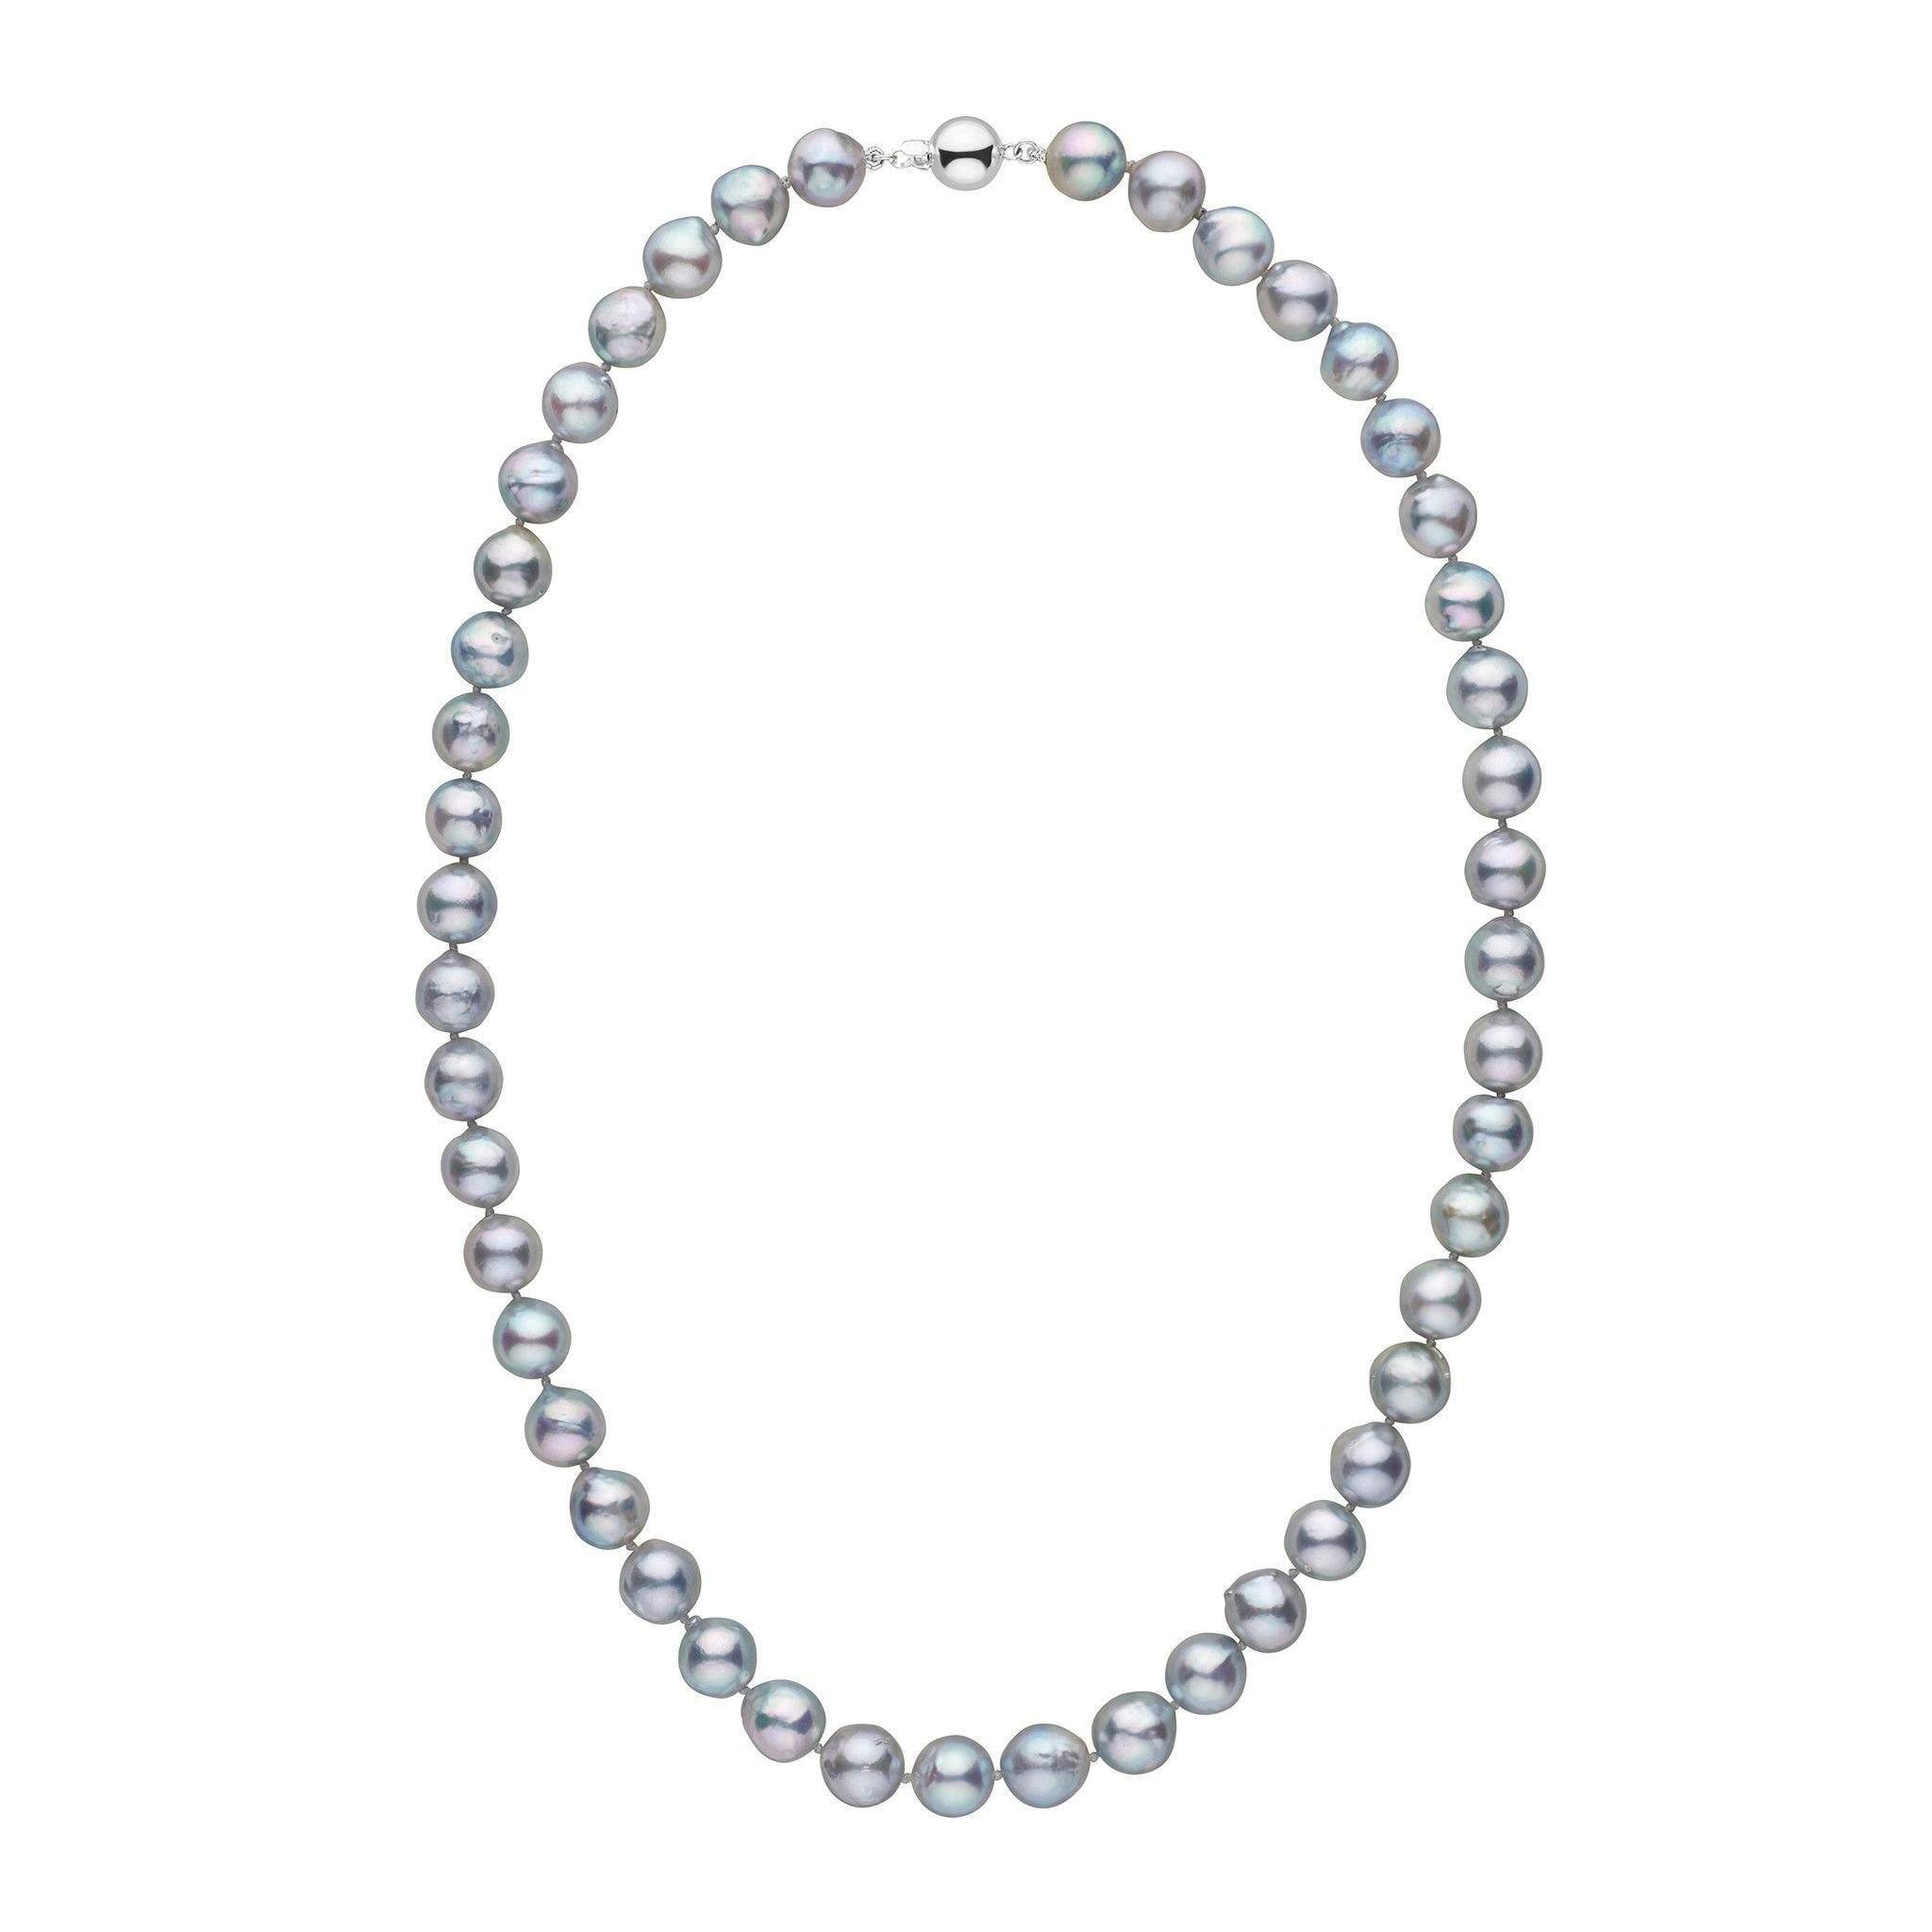 8.5-9.0 mm 18 Inch Silver-Blue Akoya Baroque Pearl Necklace